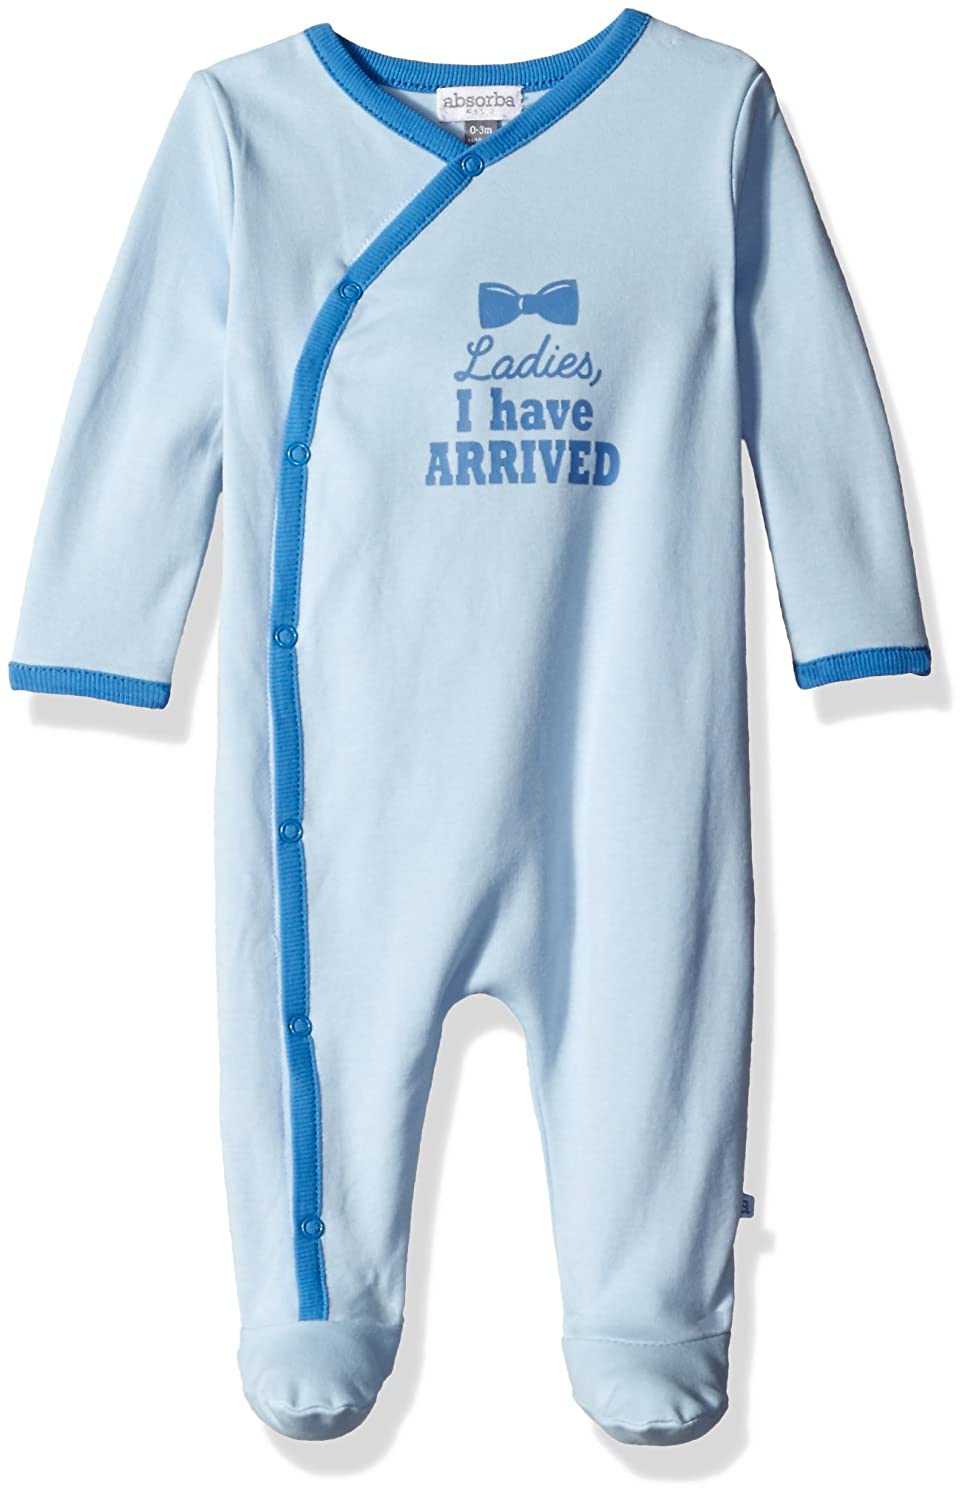 absorba Baby Boys Footie Absorba Children' s Apparel ABNB7119R